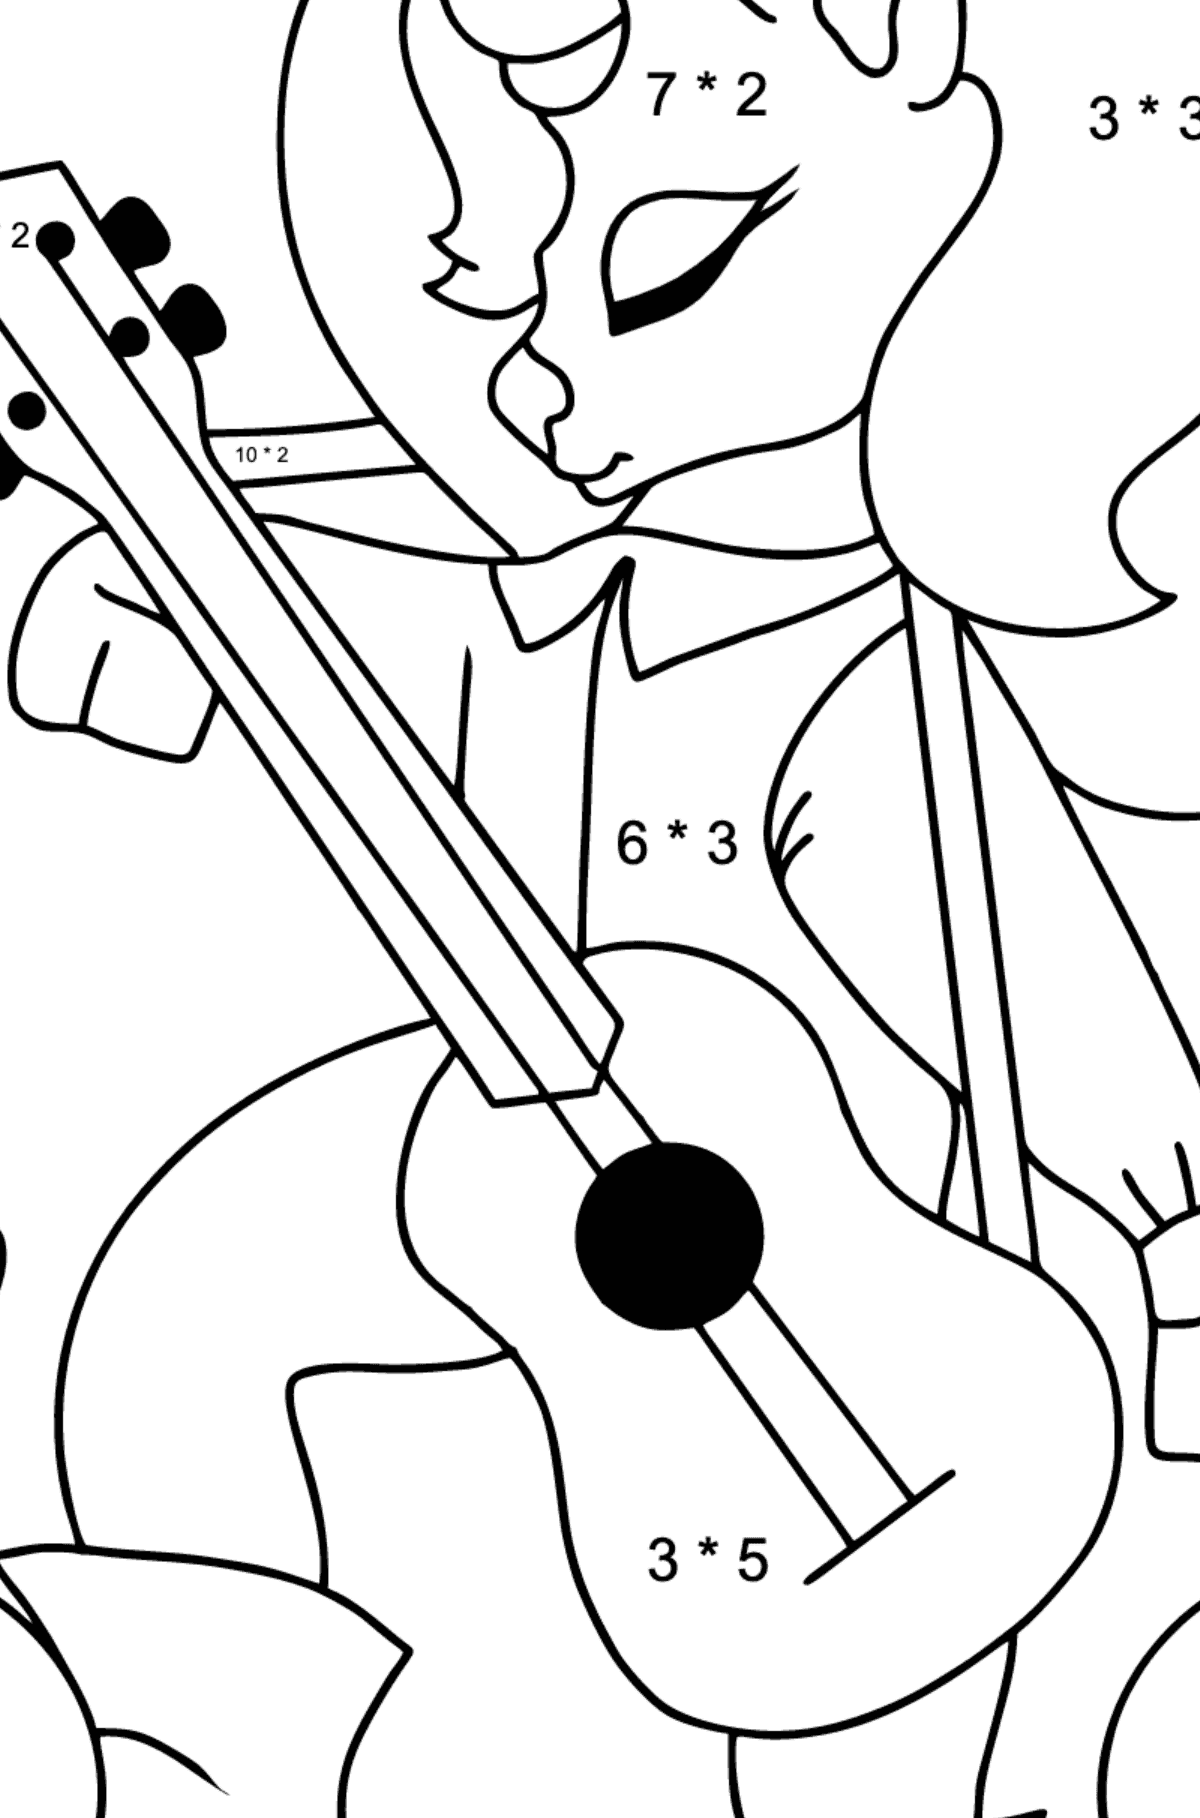 Simple Coloring Page - A Unicorn with a Guitar for Children  - Color by Number Multiplication